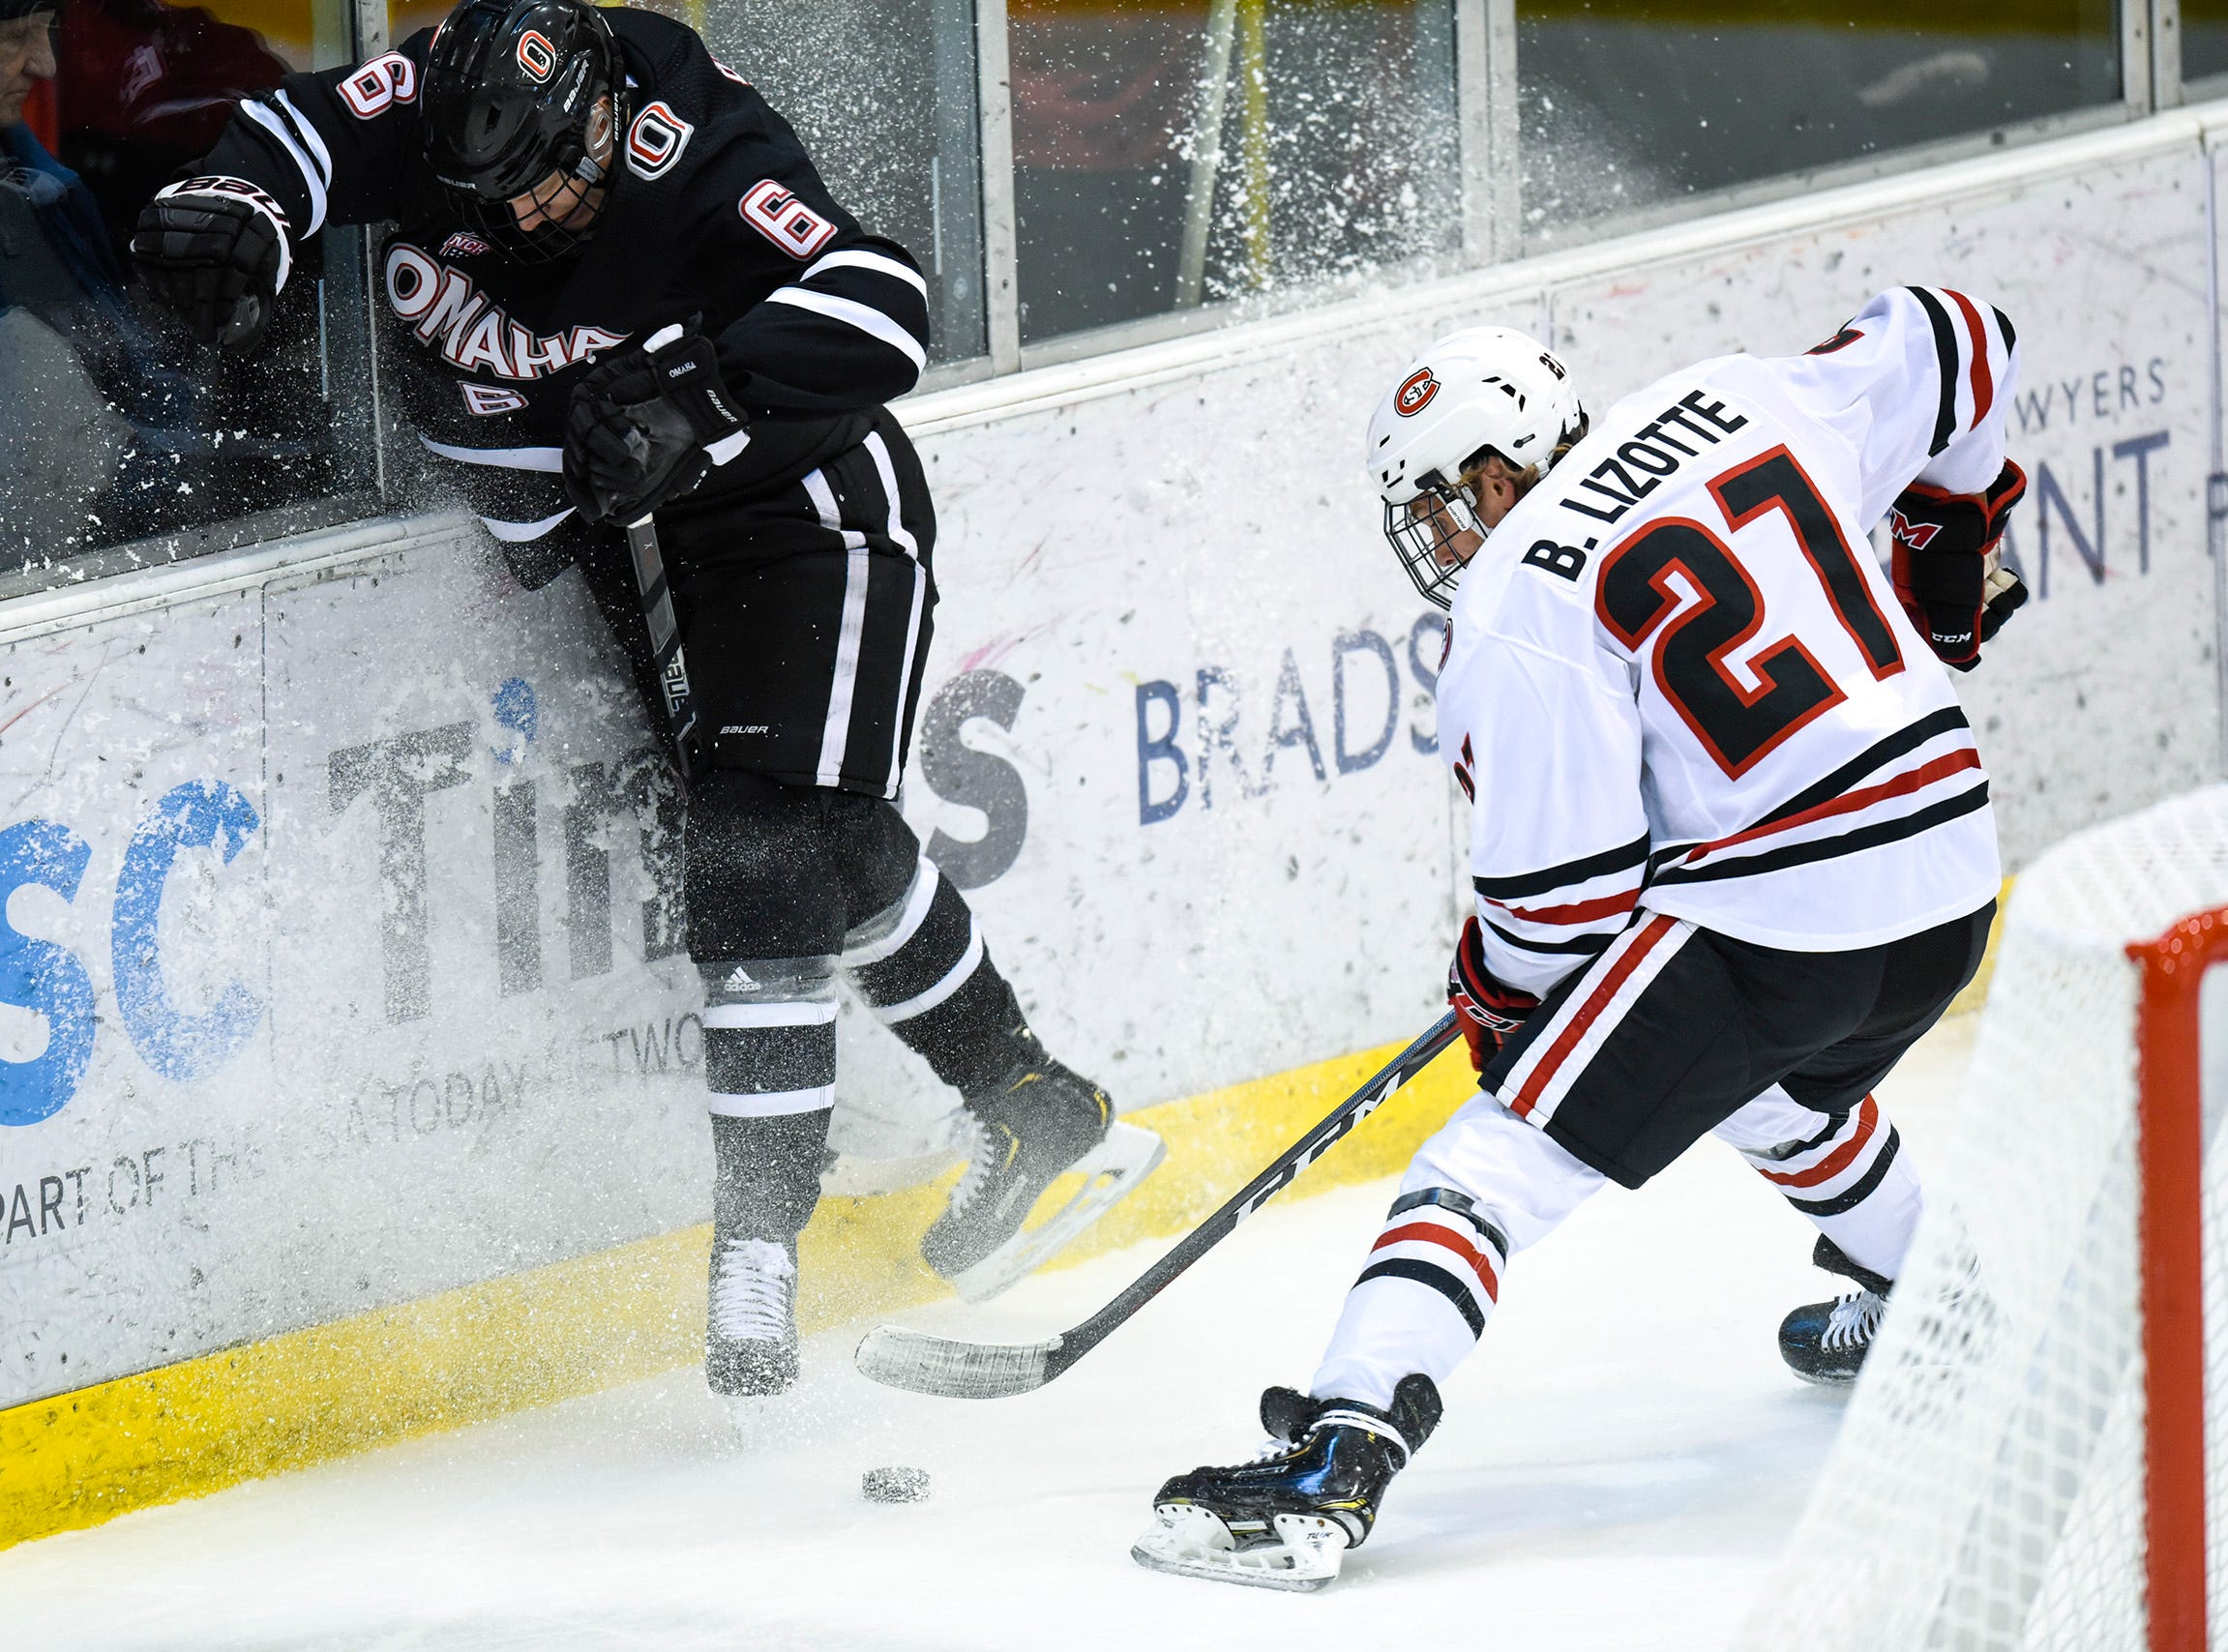 Nebraska-Omaha's Lukas Buchta and St. Cloud State's Blake Lizotte battle for the puck behind the goal during the first period Saturday, Dec. 8, at the Herb Brooks National Hockey Center.